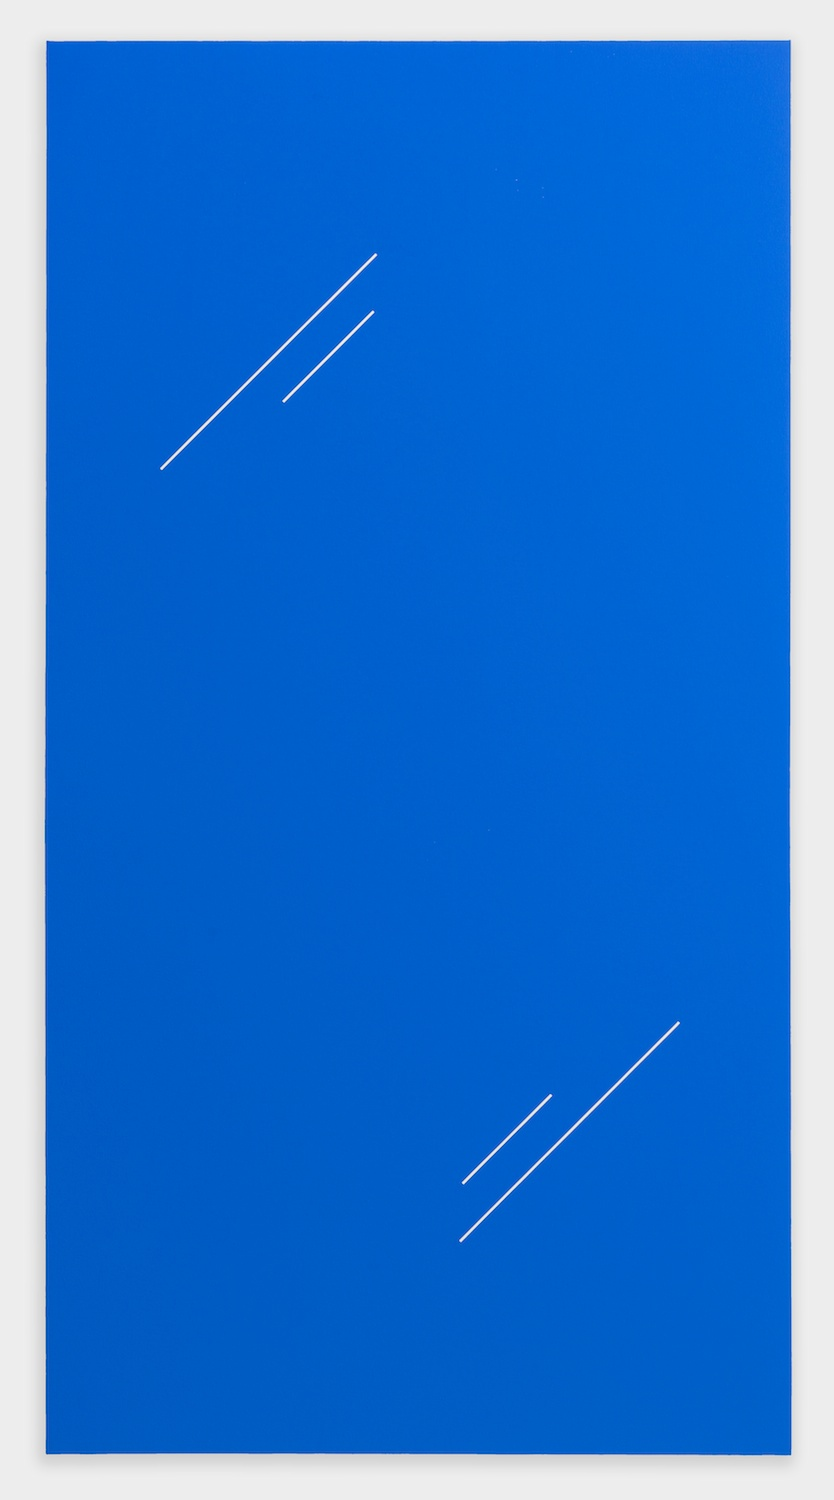 "Paul Cowan BCEAUSE THE SKY IS BULE 2013 Chroma-key blue paint on canvas 78"" x 41"" PC081"